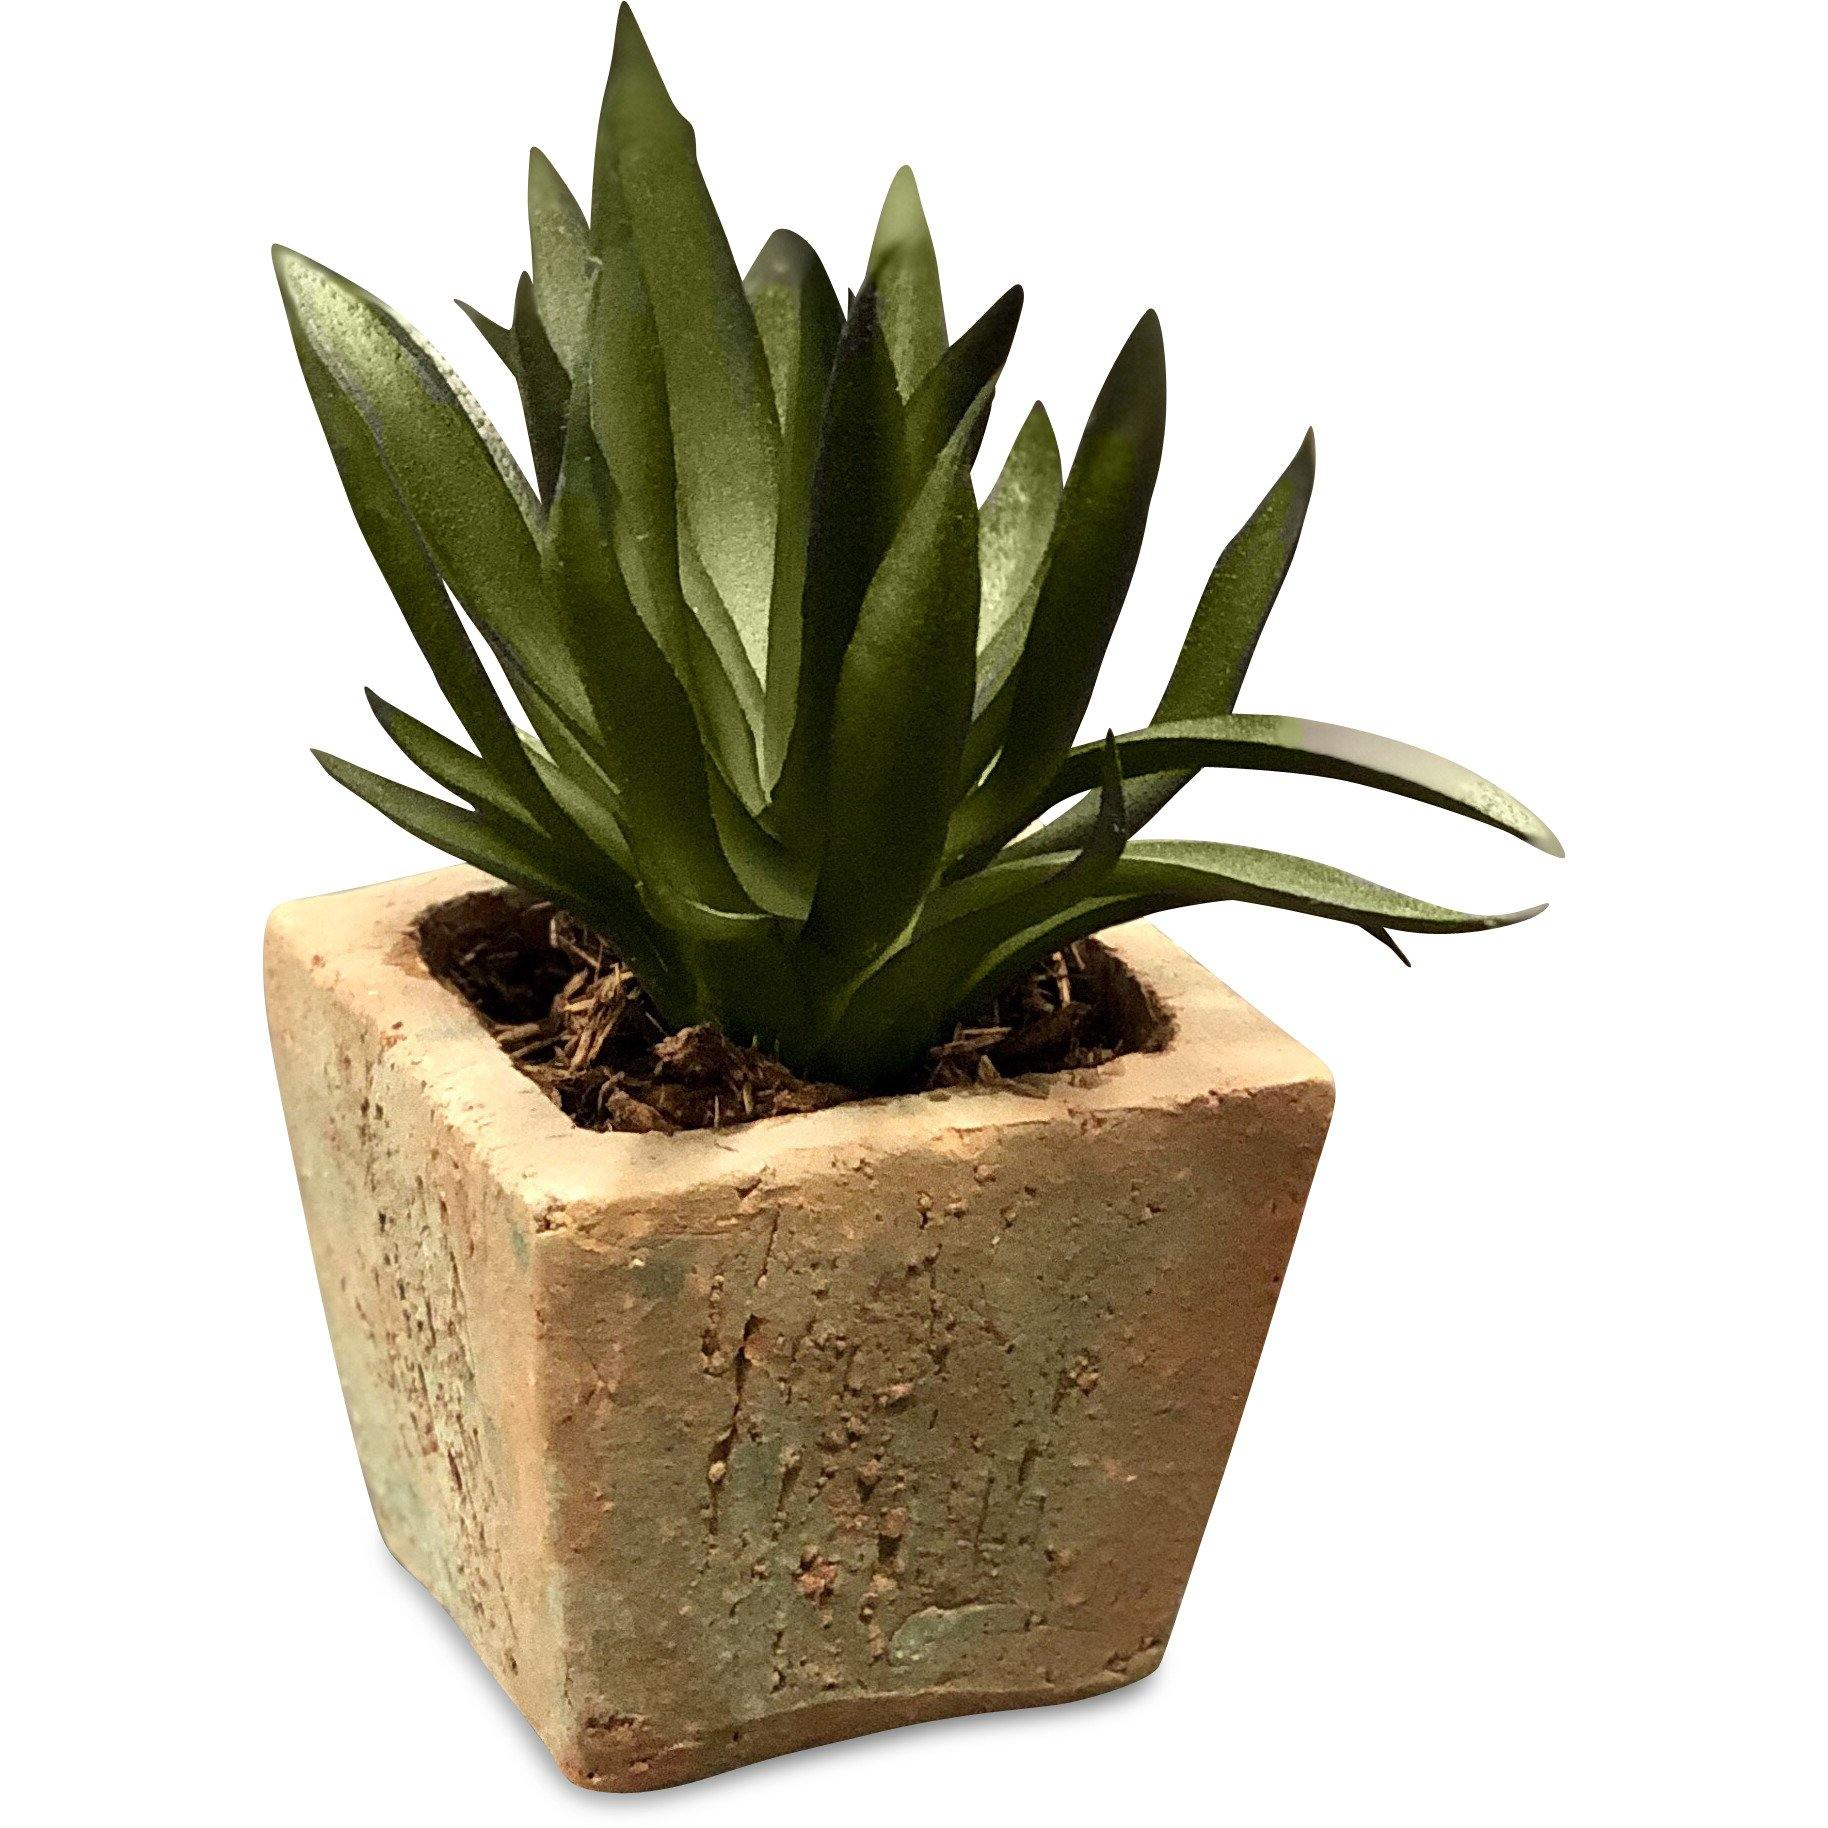 Succulent - Agave in clay pot - New Growth Designs